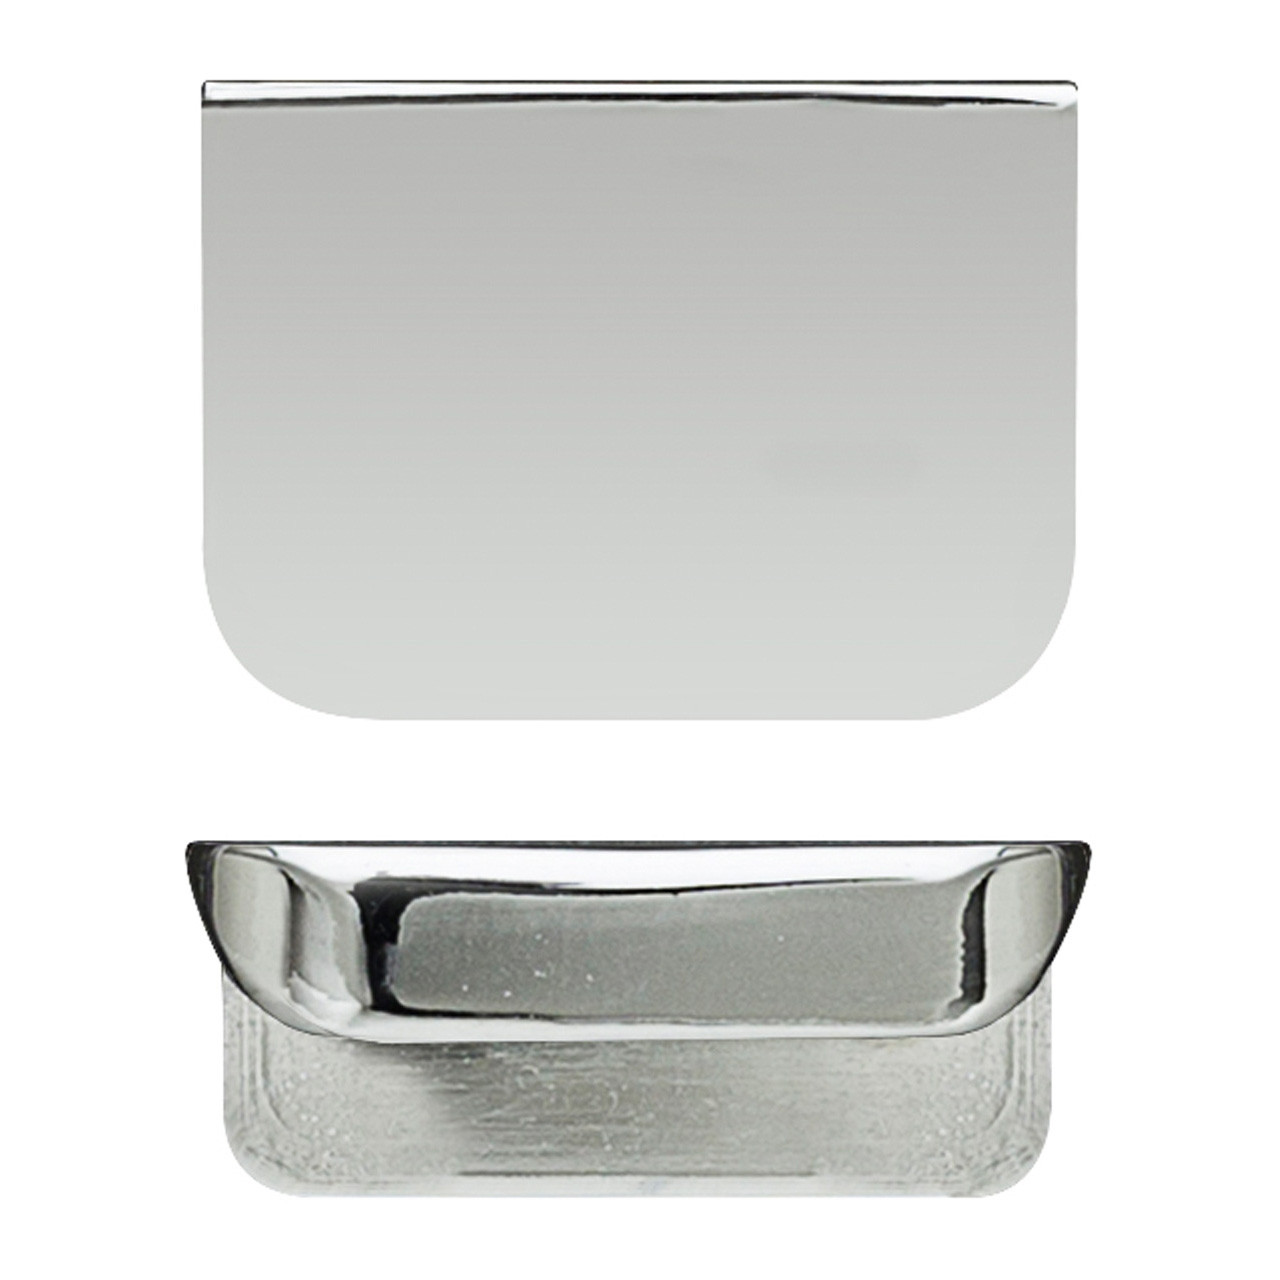 Hudson Reed Chrome Rear Fixed Small Handle 50mm x 37mm x 21mm - H050